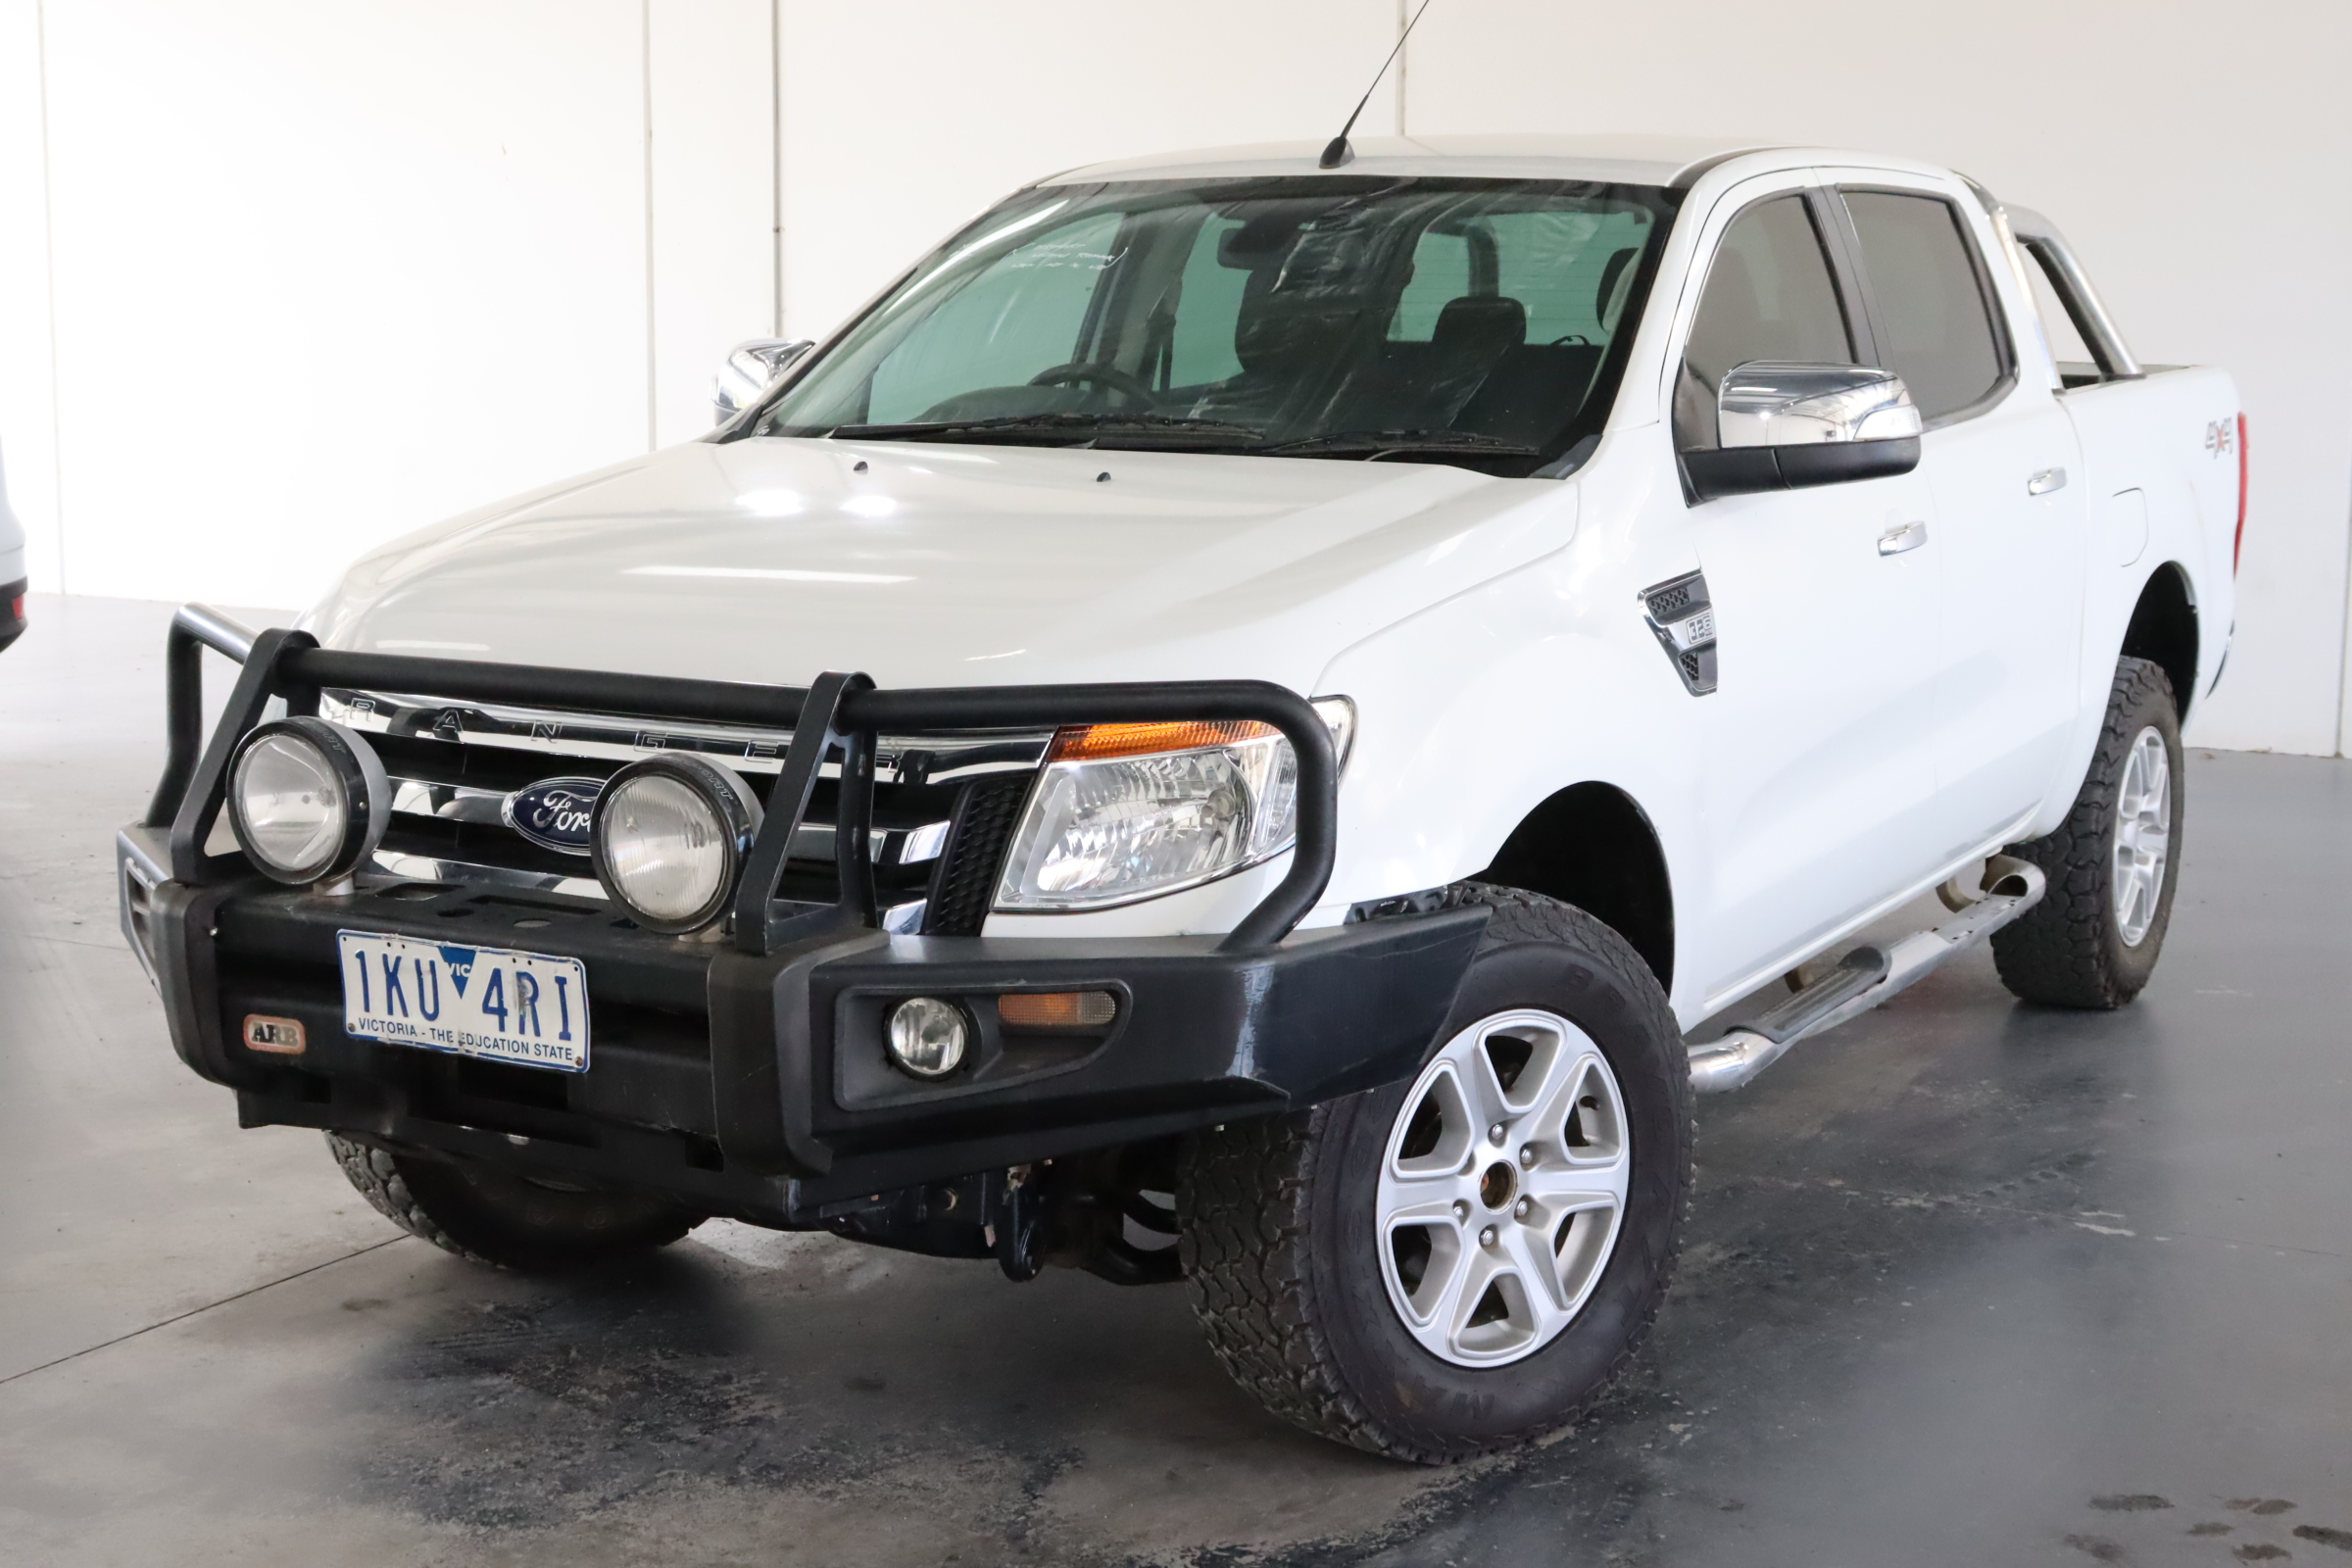 2014 Ford Ranger XLT 4X4 PX Turbo Diesel Automatic Dual Cab